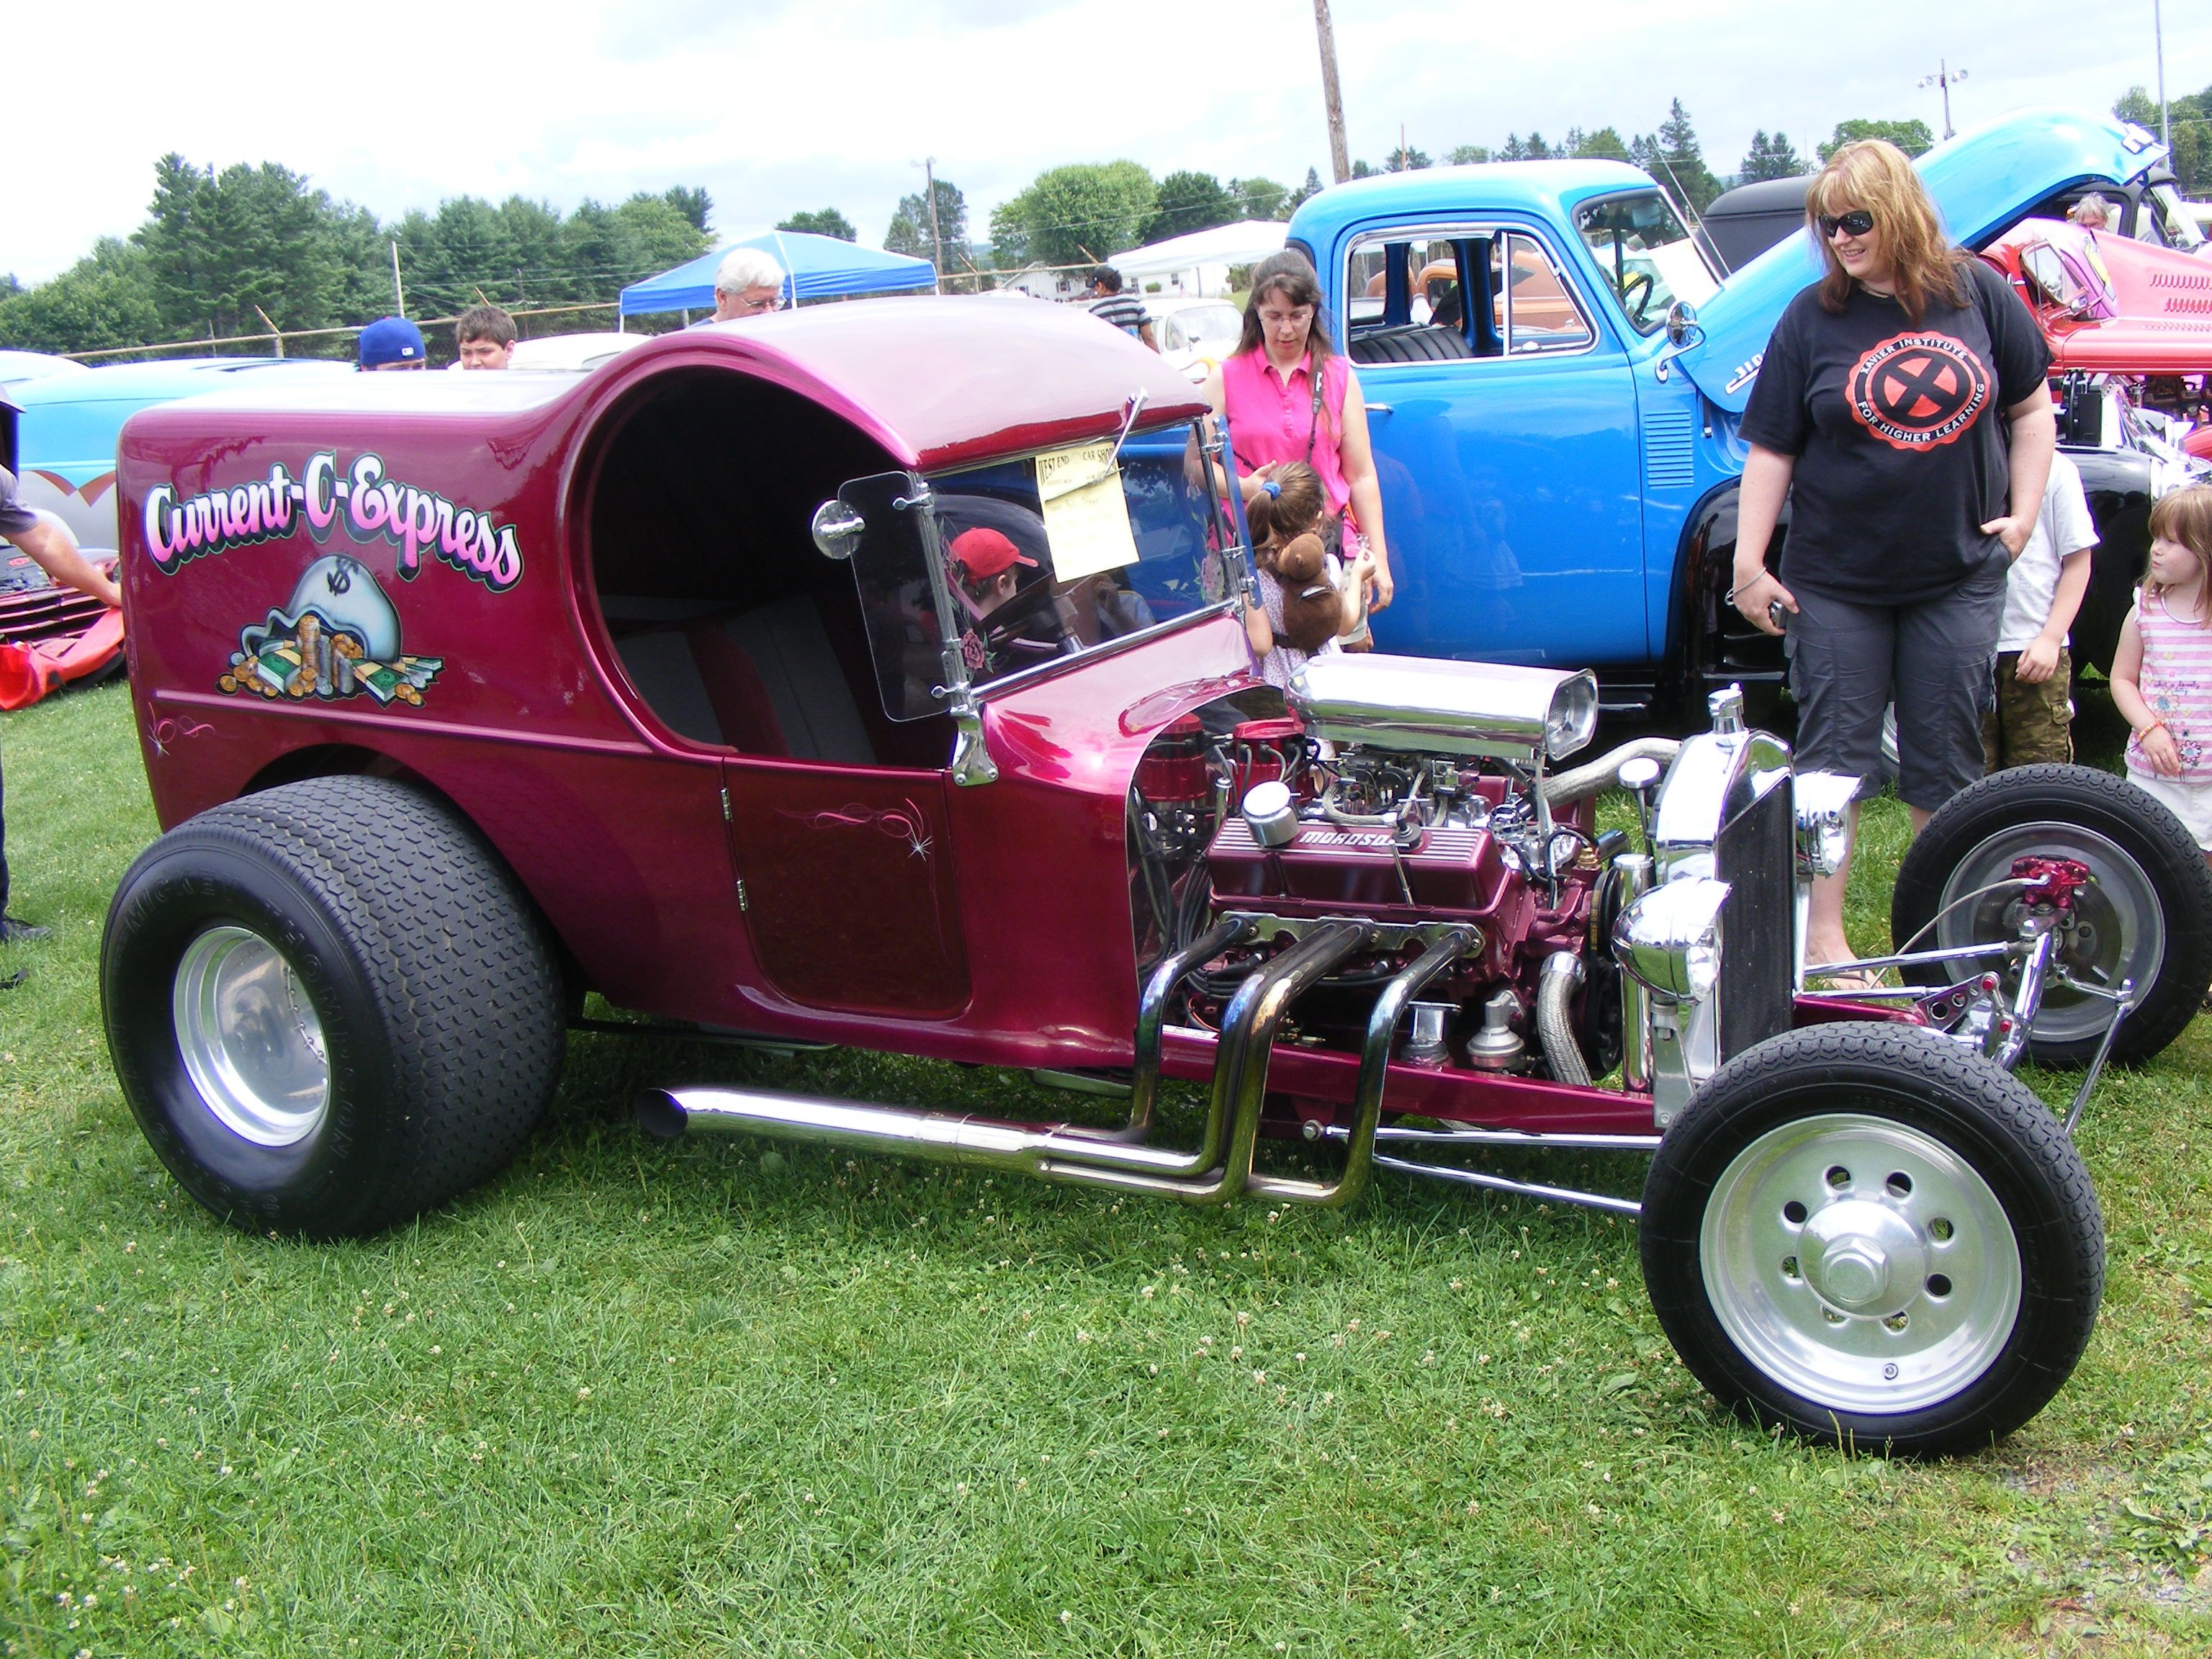 Hd Photos And Wallpapers Of Ford C Cab Manufactured By Ford Hot Rods Cars Classic Cars Trucks Vintage Muscle Cars